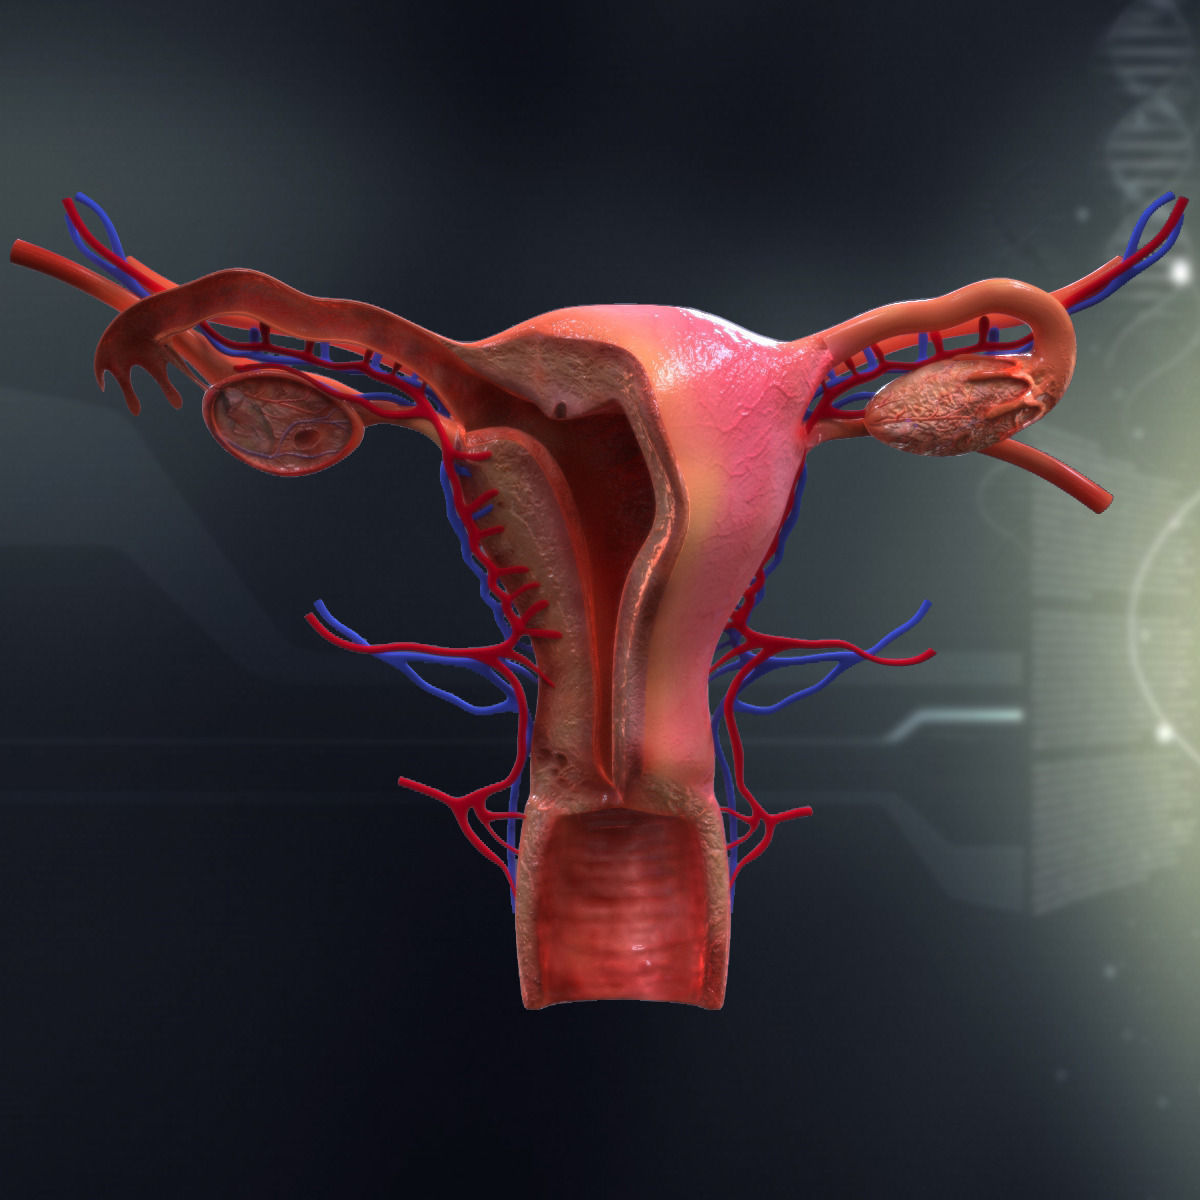 Human Female Organ Anatomy 3d Model Cgtrader